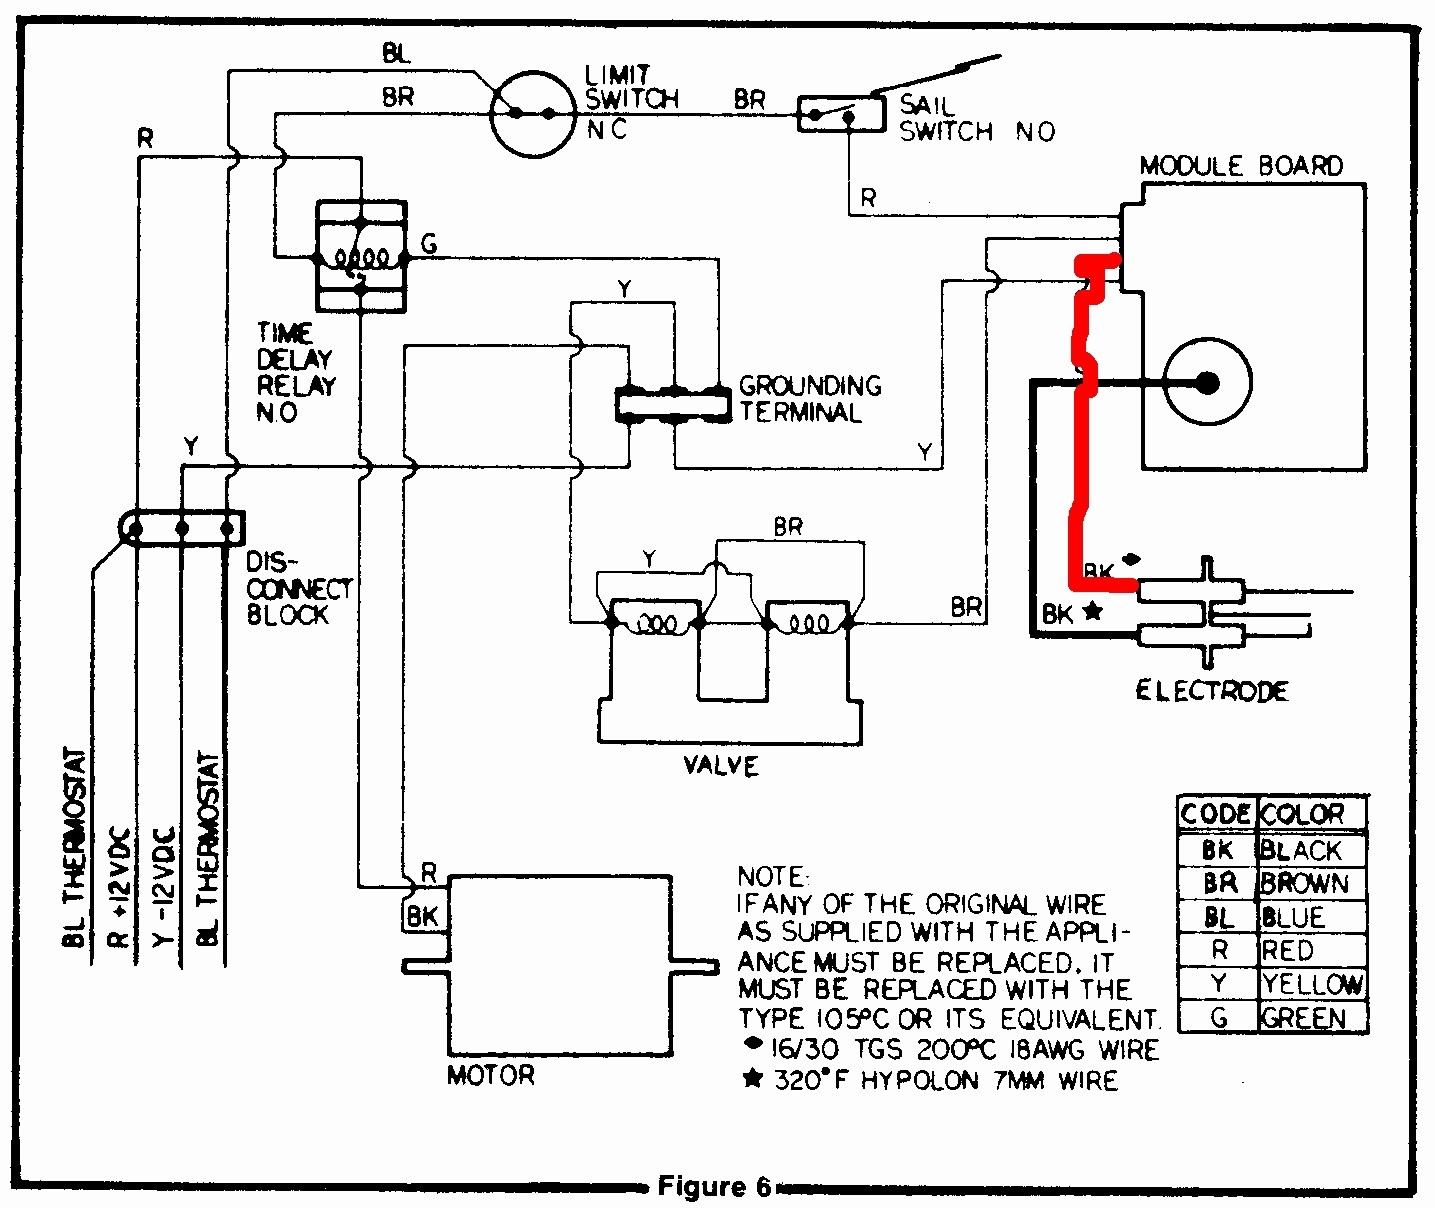 Duo therm rv air conditioner wiring diagram inspirational wiring duo therm thermostat wiring diagram luxury duo therm thermostat wiring diagram hbphelp publicscrutiny Image collections